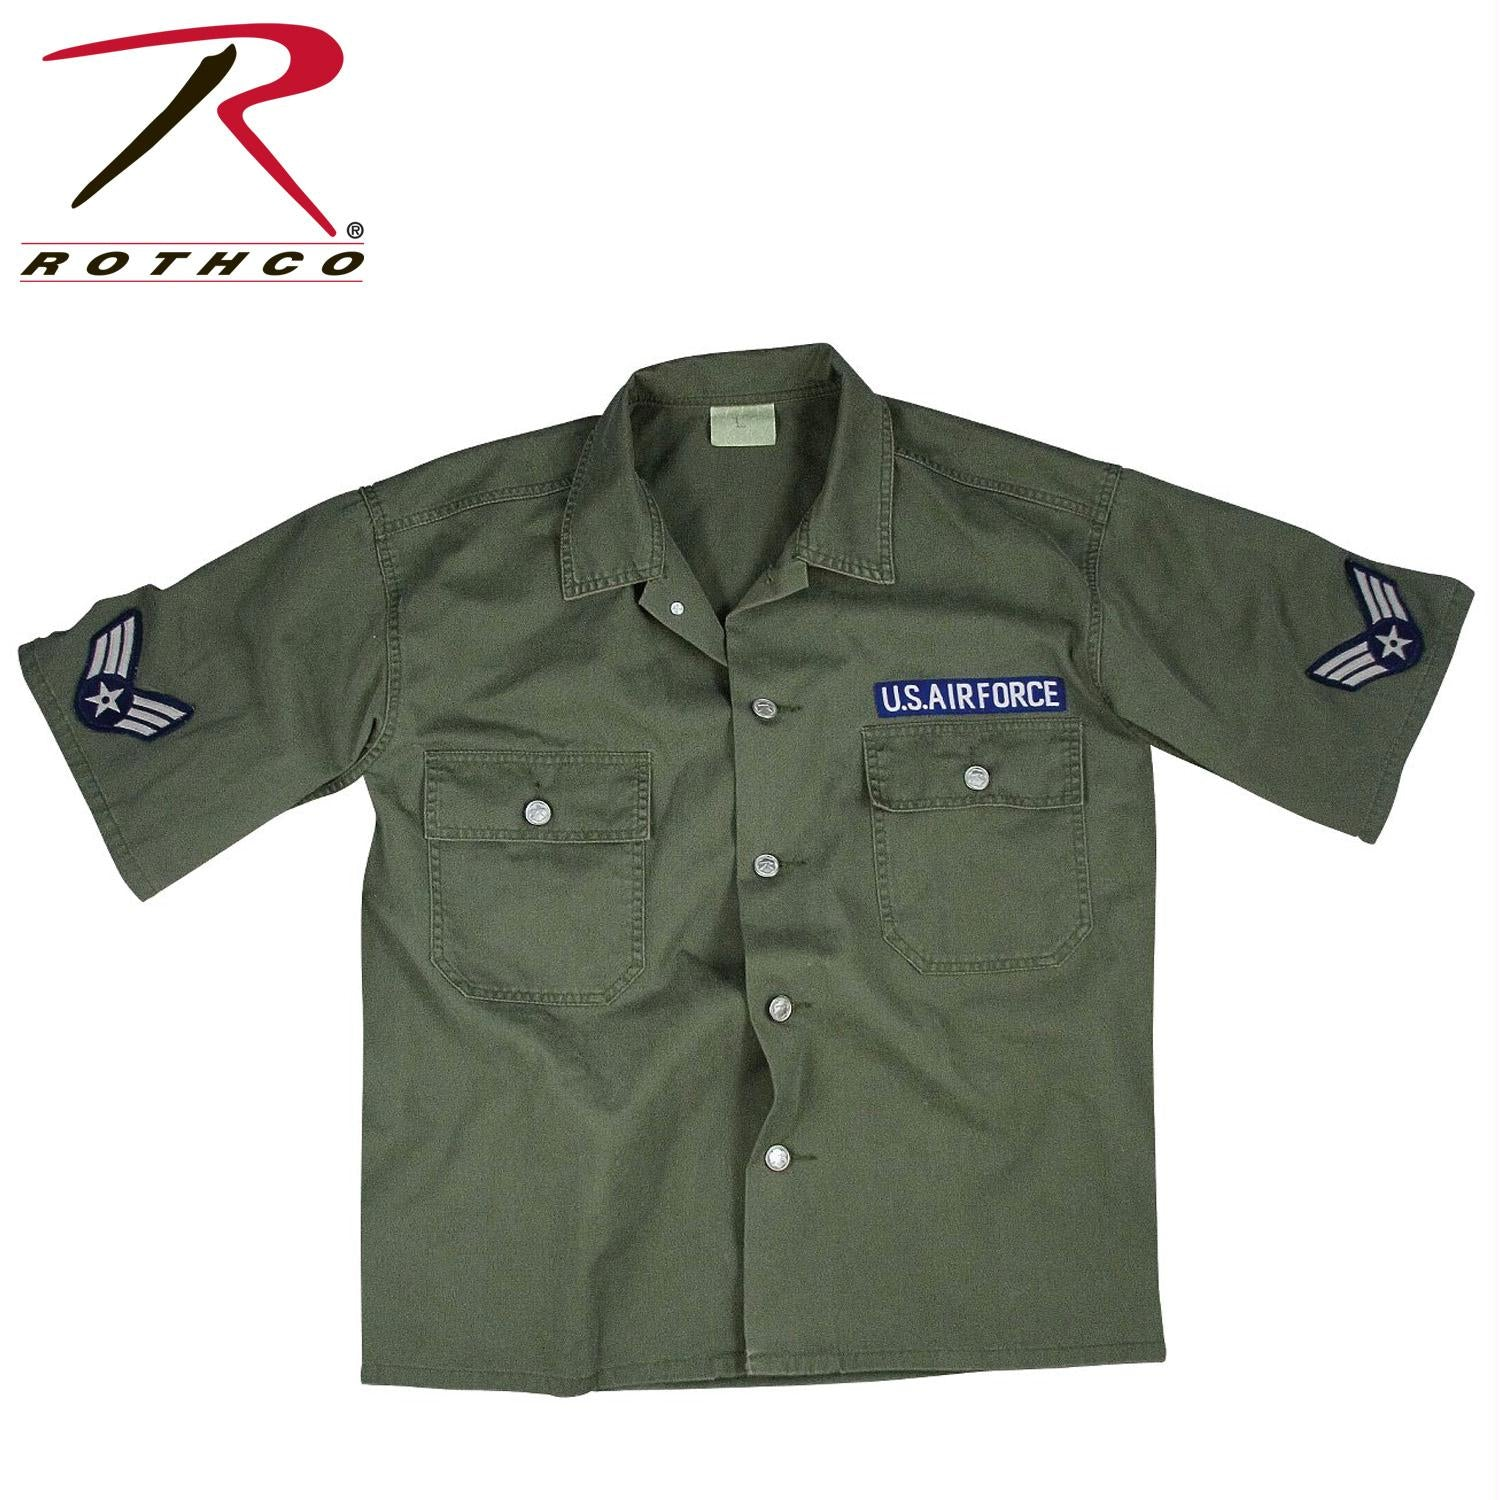 Rothco Vintage Army Air Force Short Sleeve BDU Shirt - S